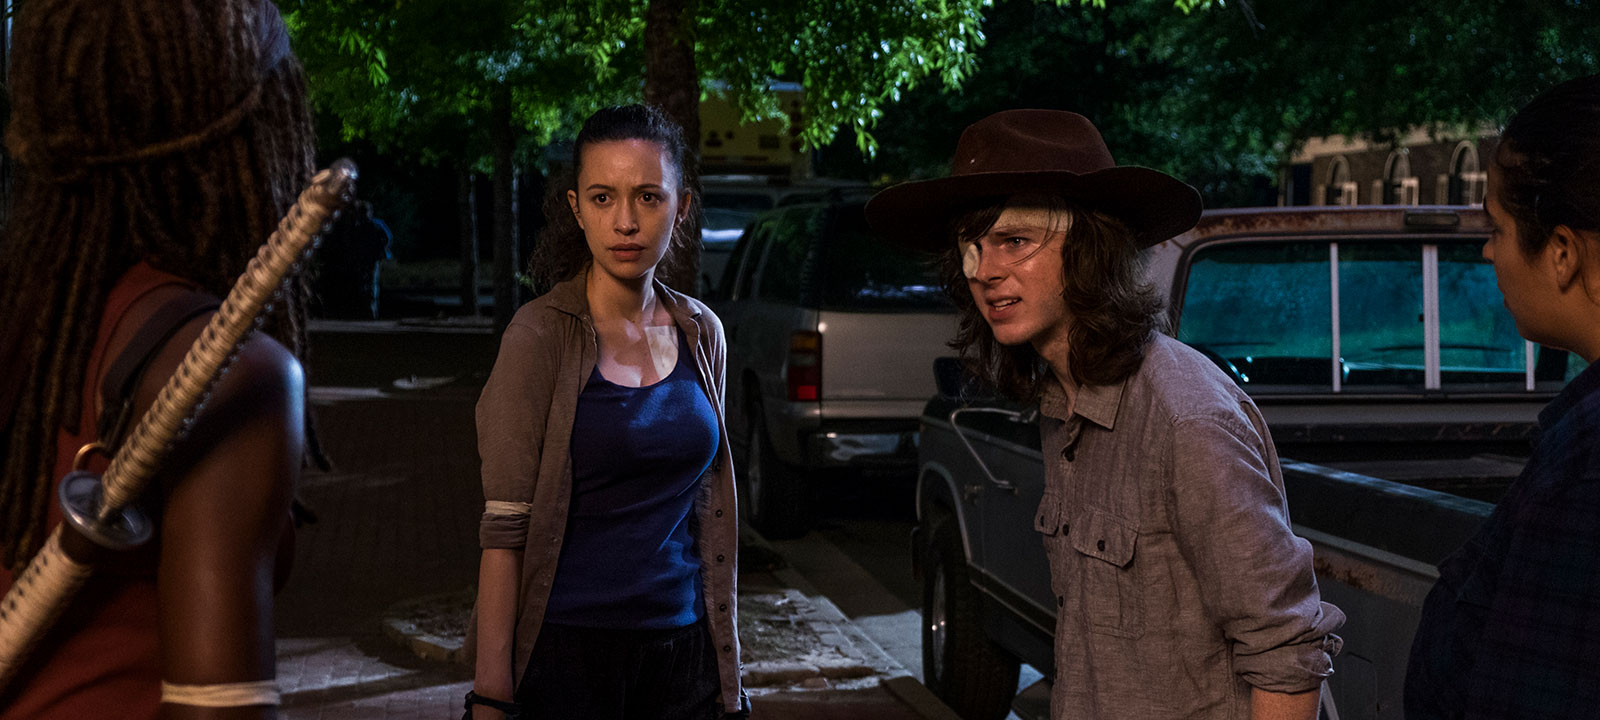 the-walking-dead-episode-808-carl-riggs-800×600-interview